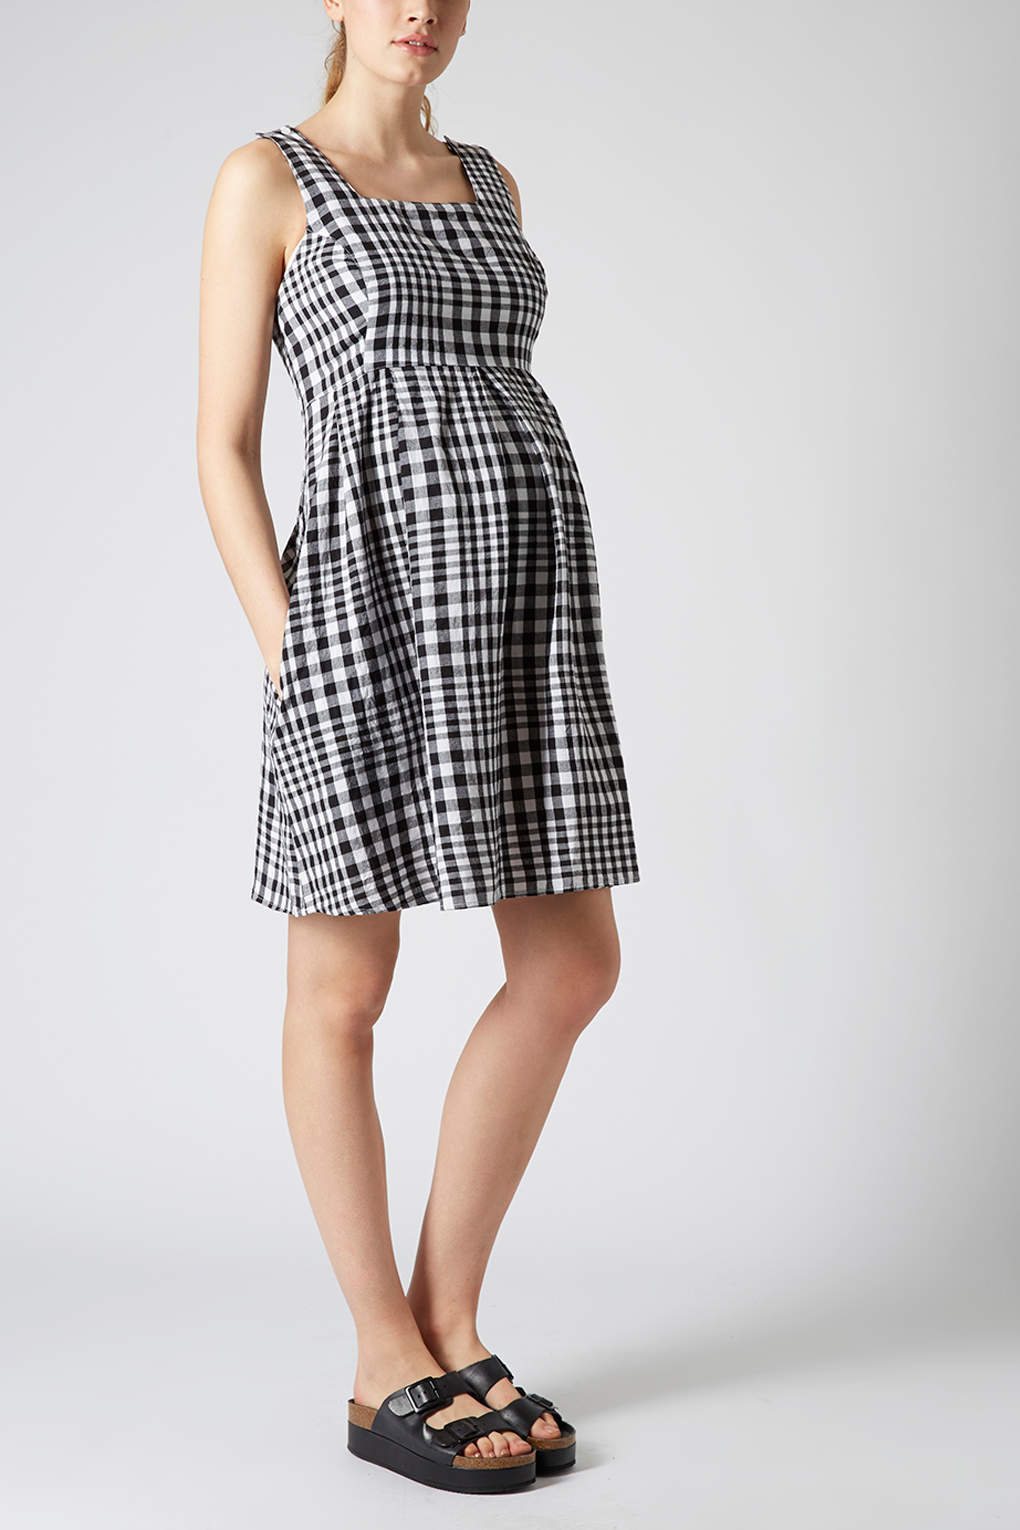 Topshop maternity gingham check smock dress in gray lyst gallery ombrellifo Choice Image